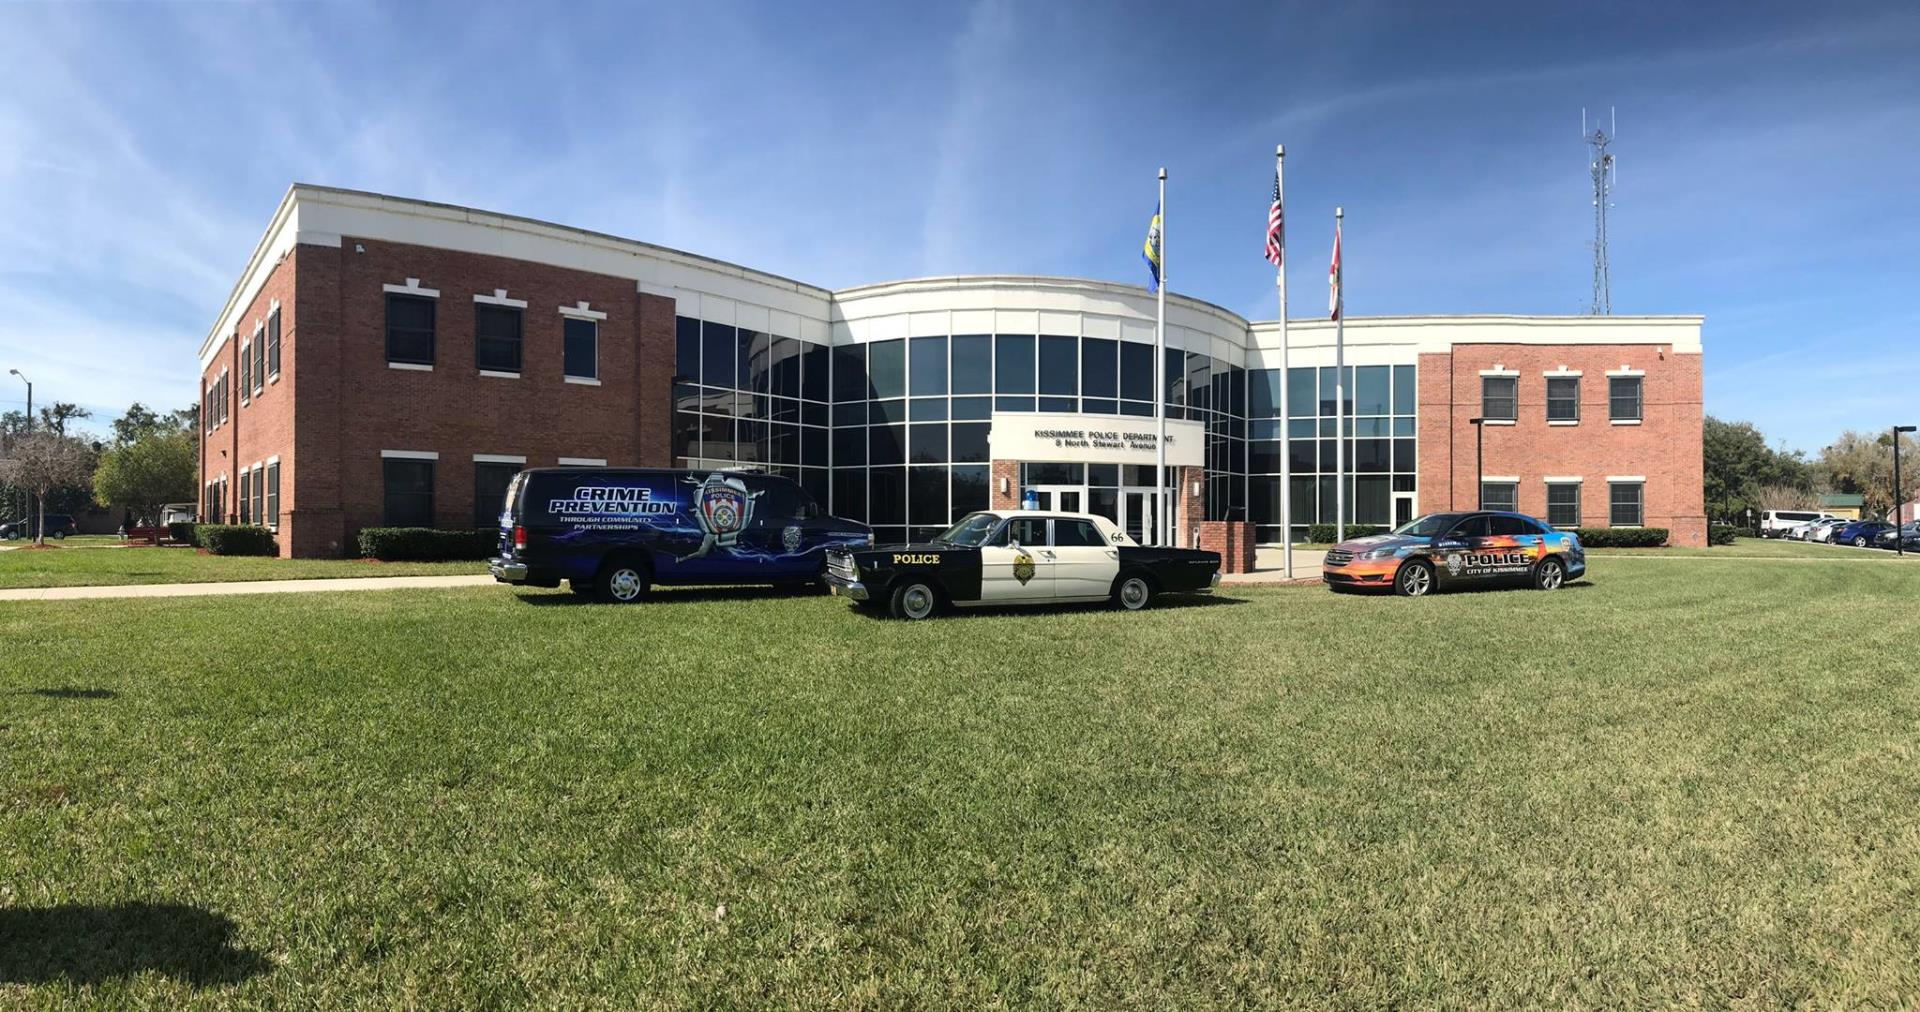 This is a photo of Kissimmee Police Department with different police vehicles parked in front of the main entrance.